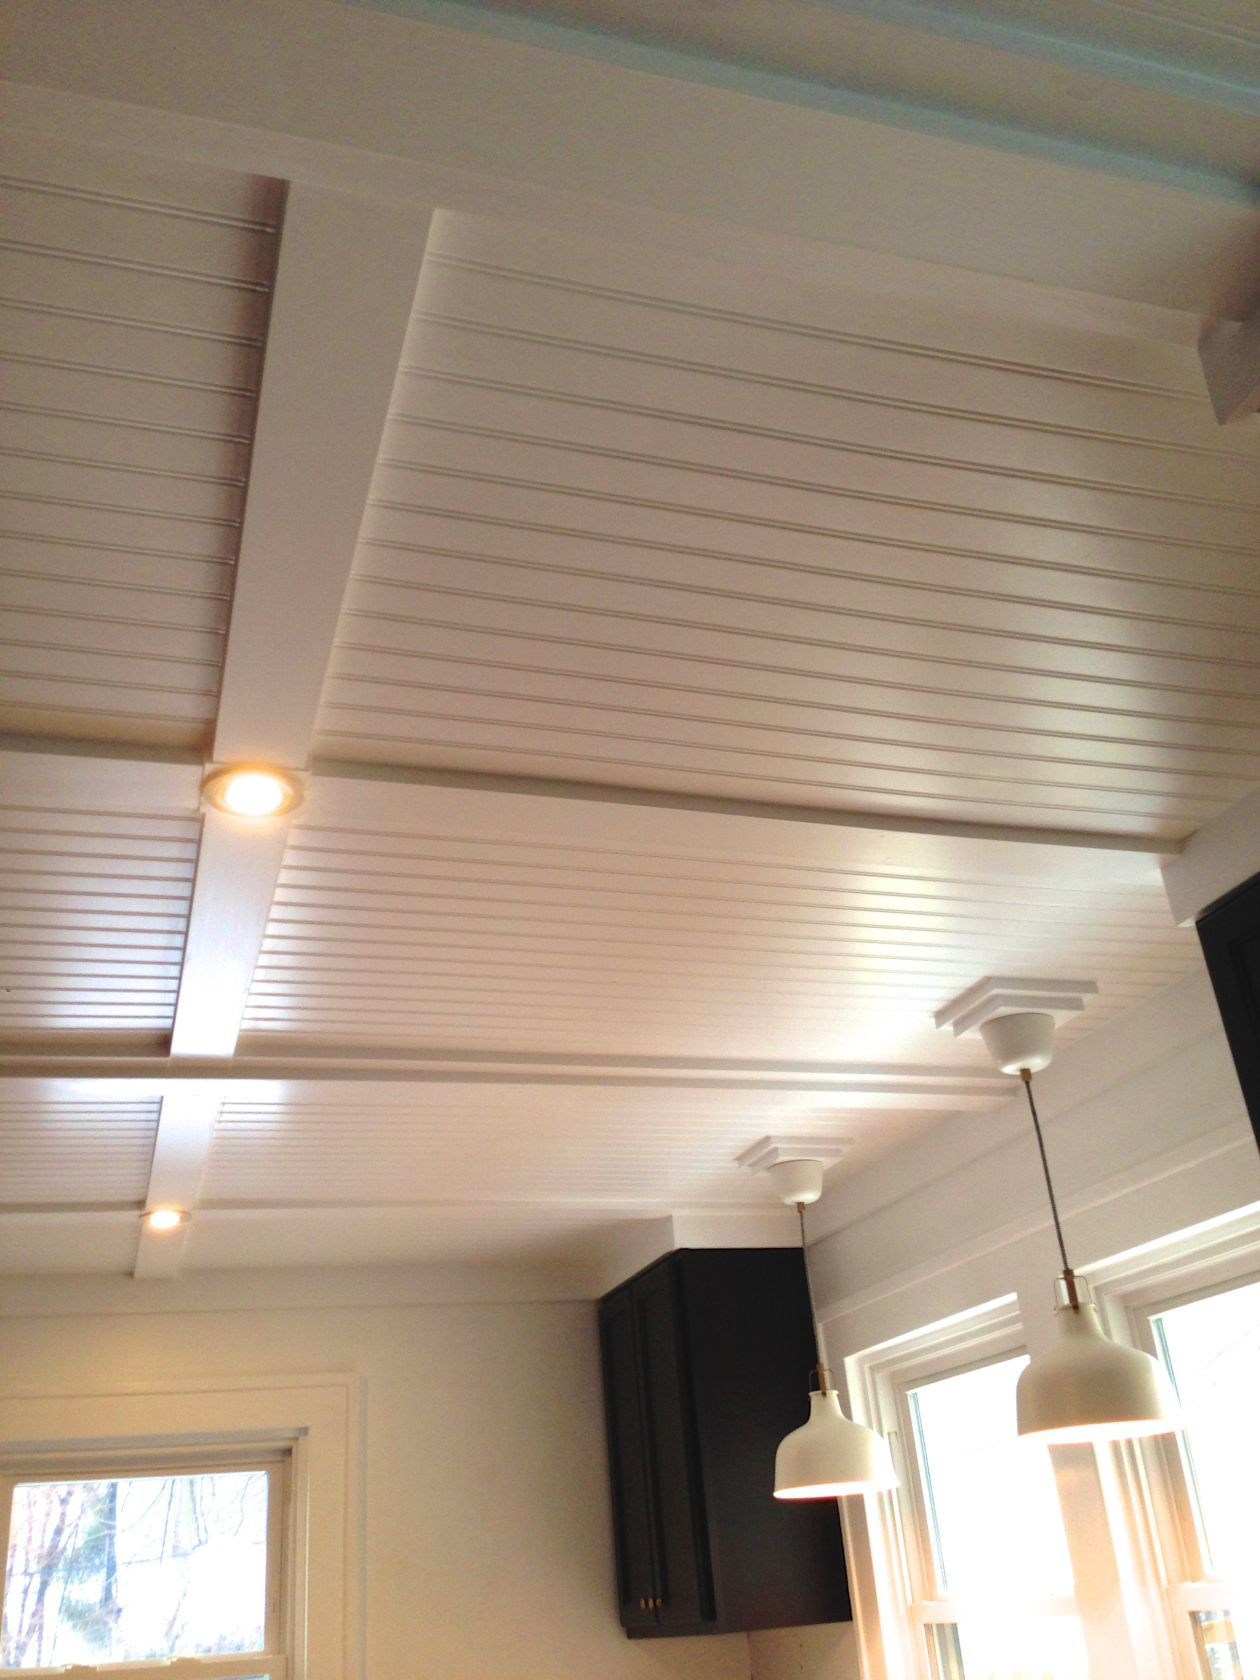 10 Stylish Covered Ceiling Ideas To Make It Smooth Avionale Design Home Remodeling Basement Remodeling Home